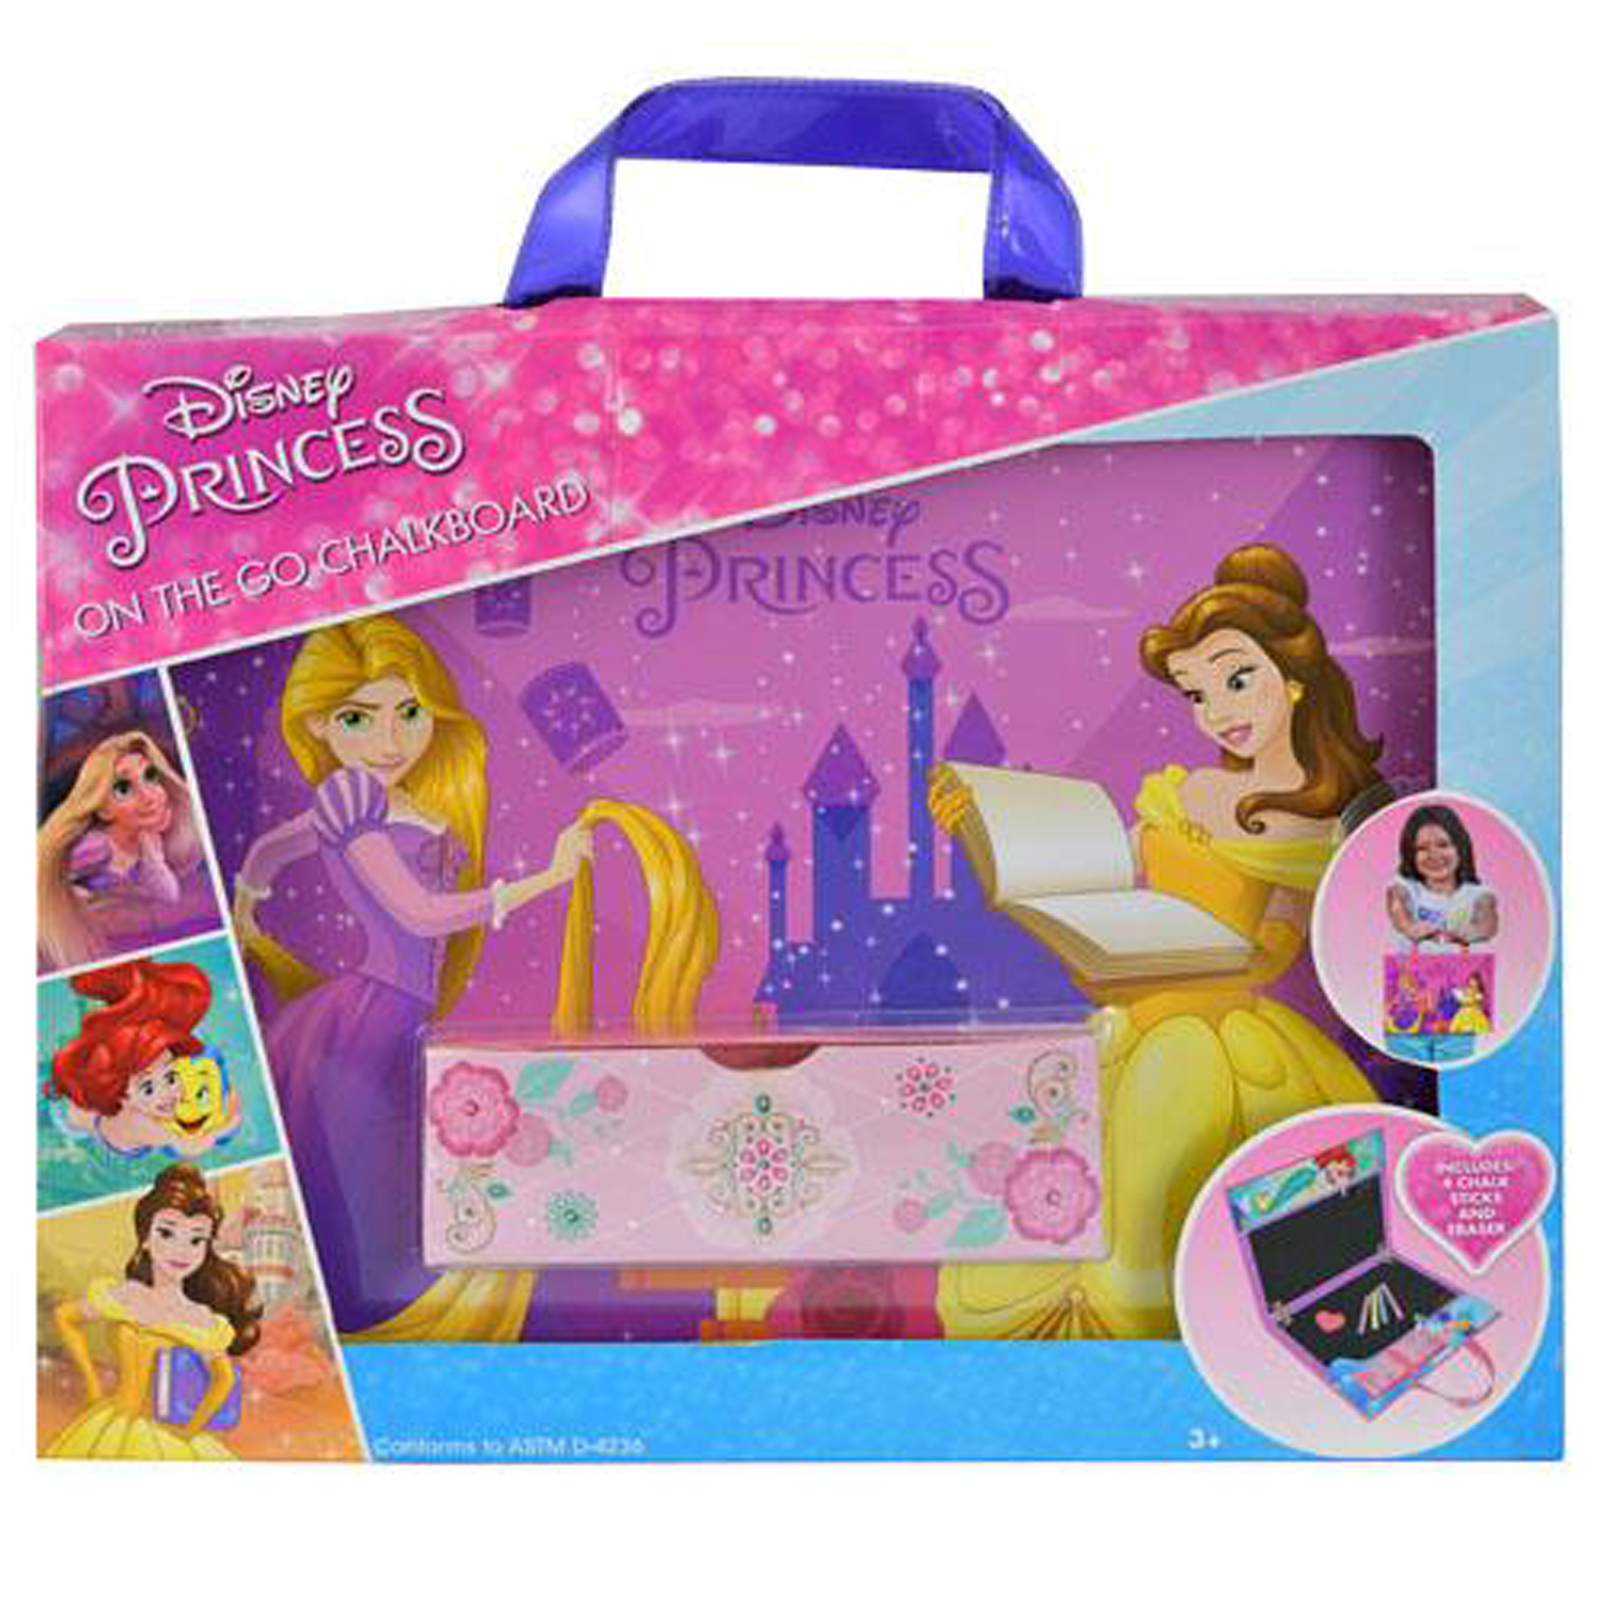 f4f3a372d6f Disney Princess On-the-Go Chalkboard Art Activity Creativity Amusement Set